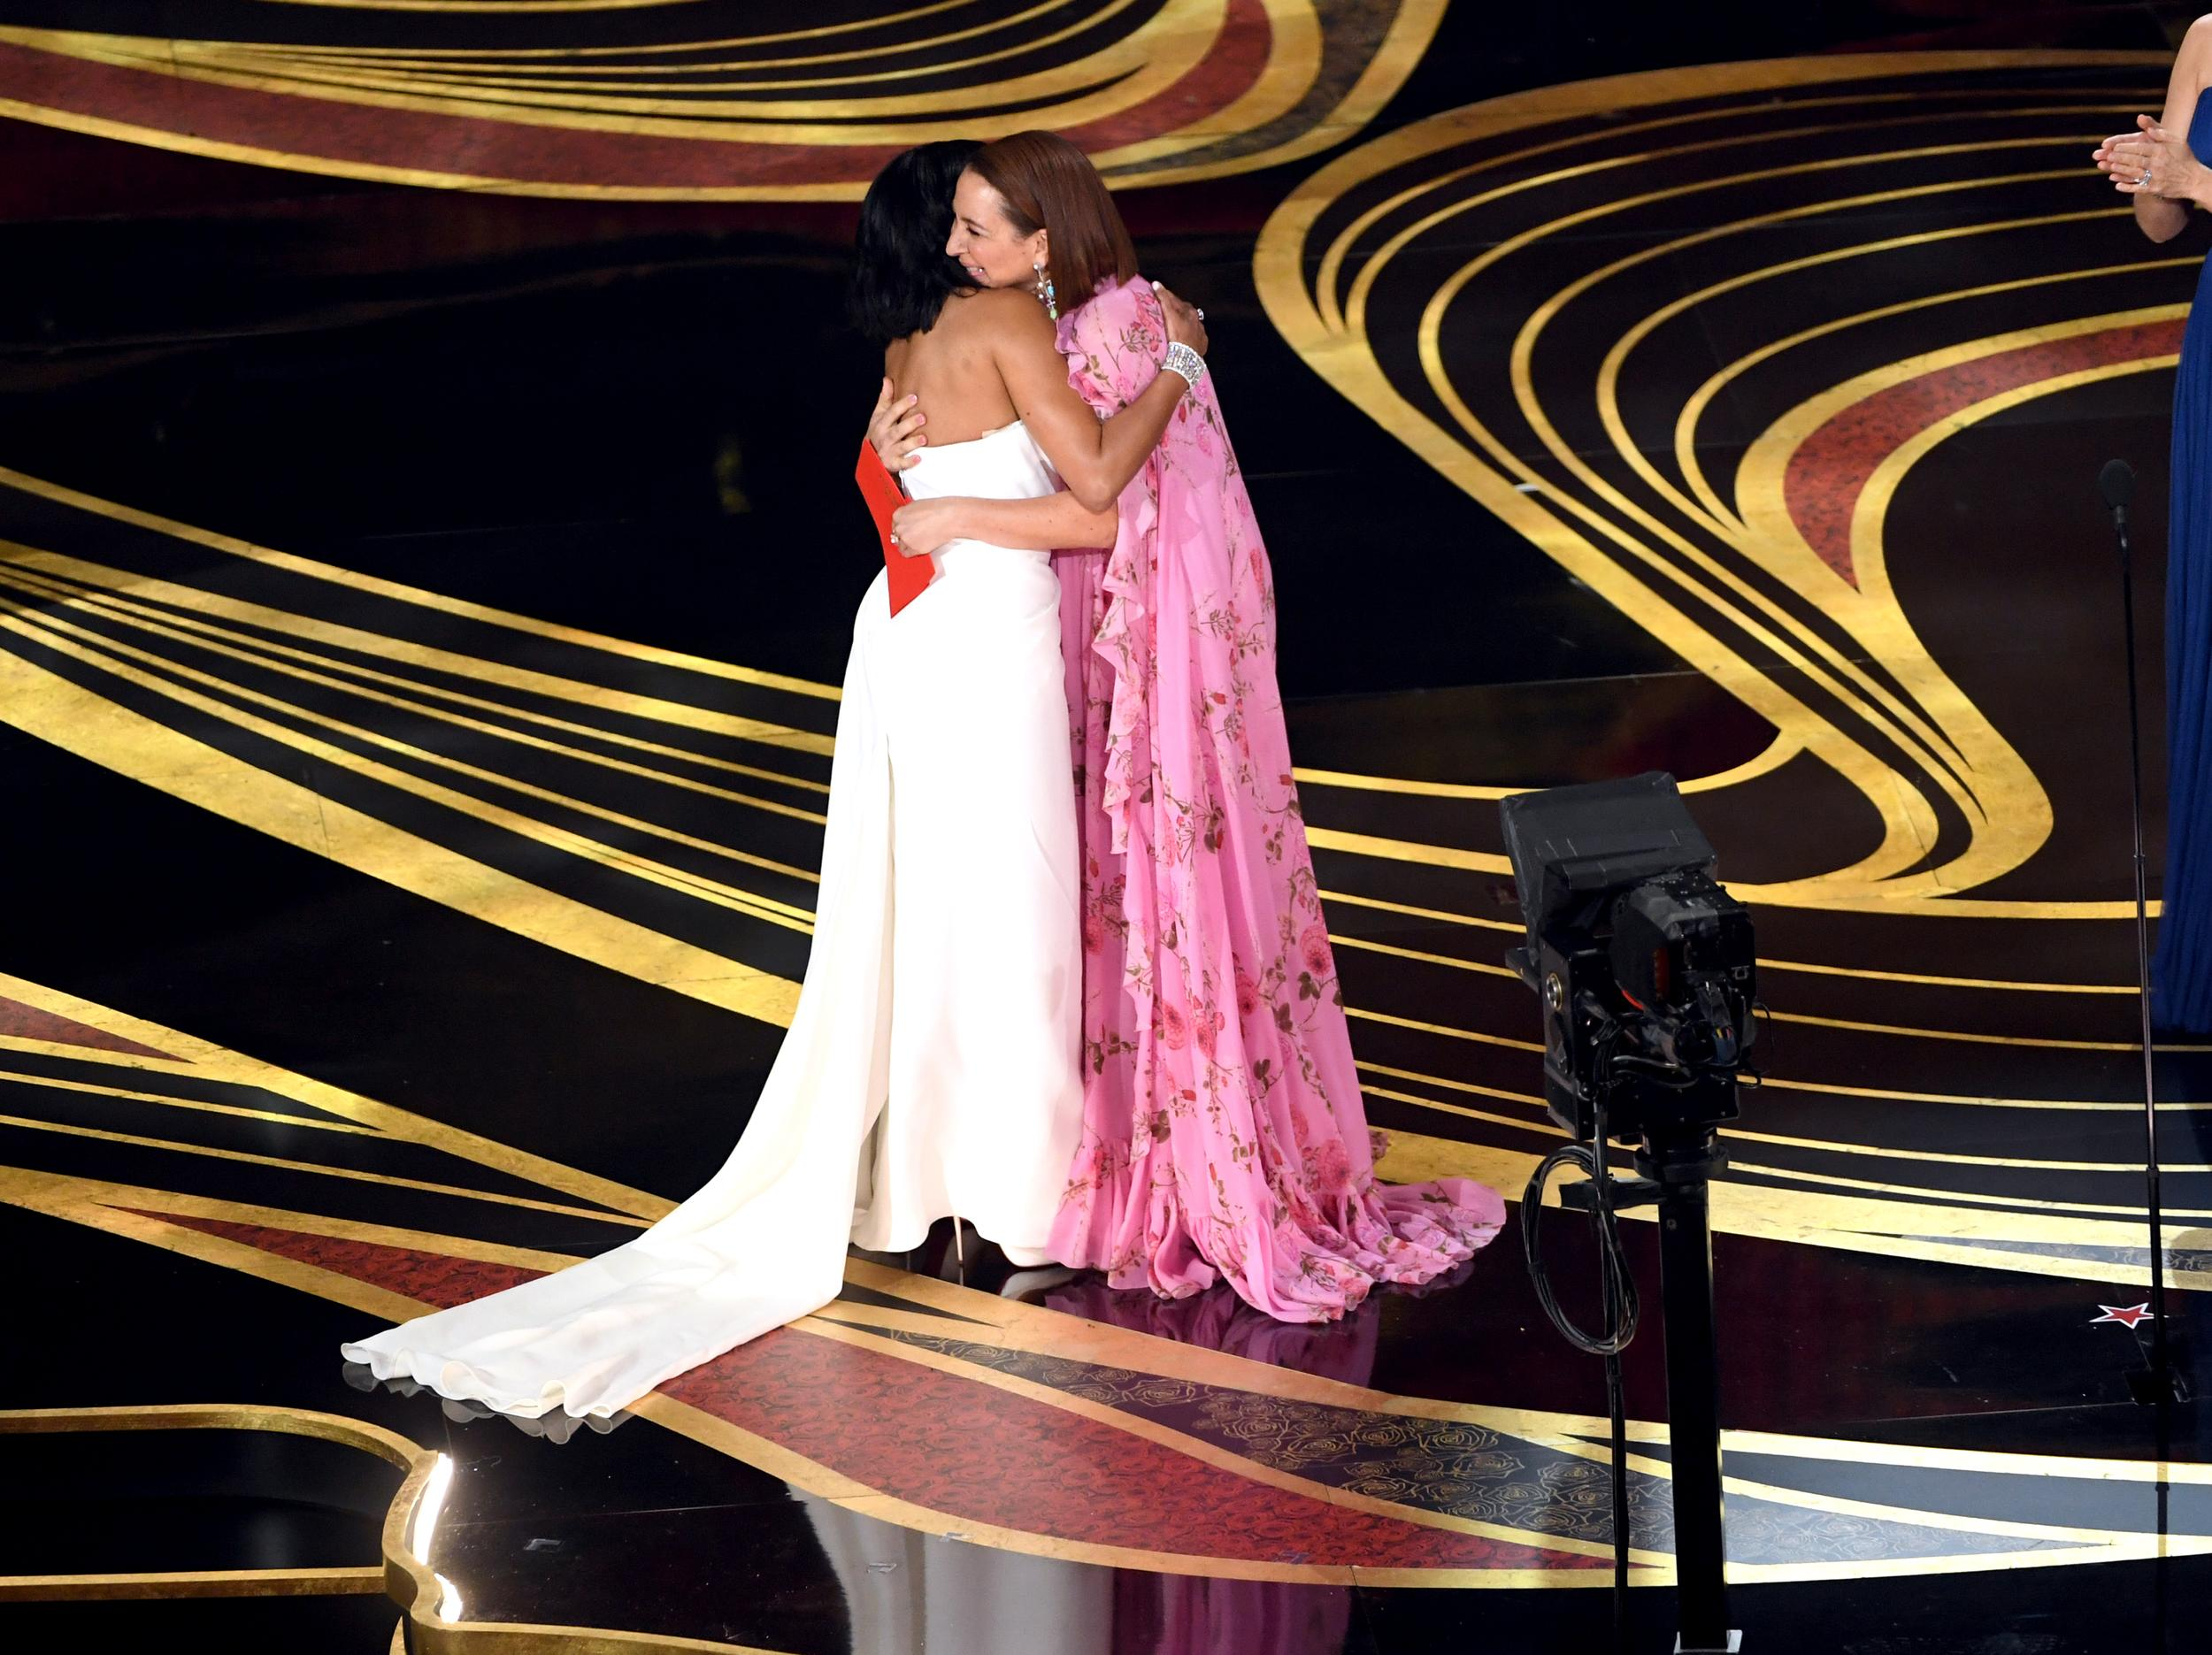 HOLLYWOOD, CALIFORNIA - FEBRUARY 24: (L-R) Regina King accepts the Actress in a Supporting Role award for 'If Beale Street Could Talk' from Maya Rudolph onstage during the 91st Annual Academy Awards at Dolby Theatre on February 24, 2019 in Hollywood, California. (Photo by Kevin Winter/Getty Images)